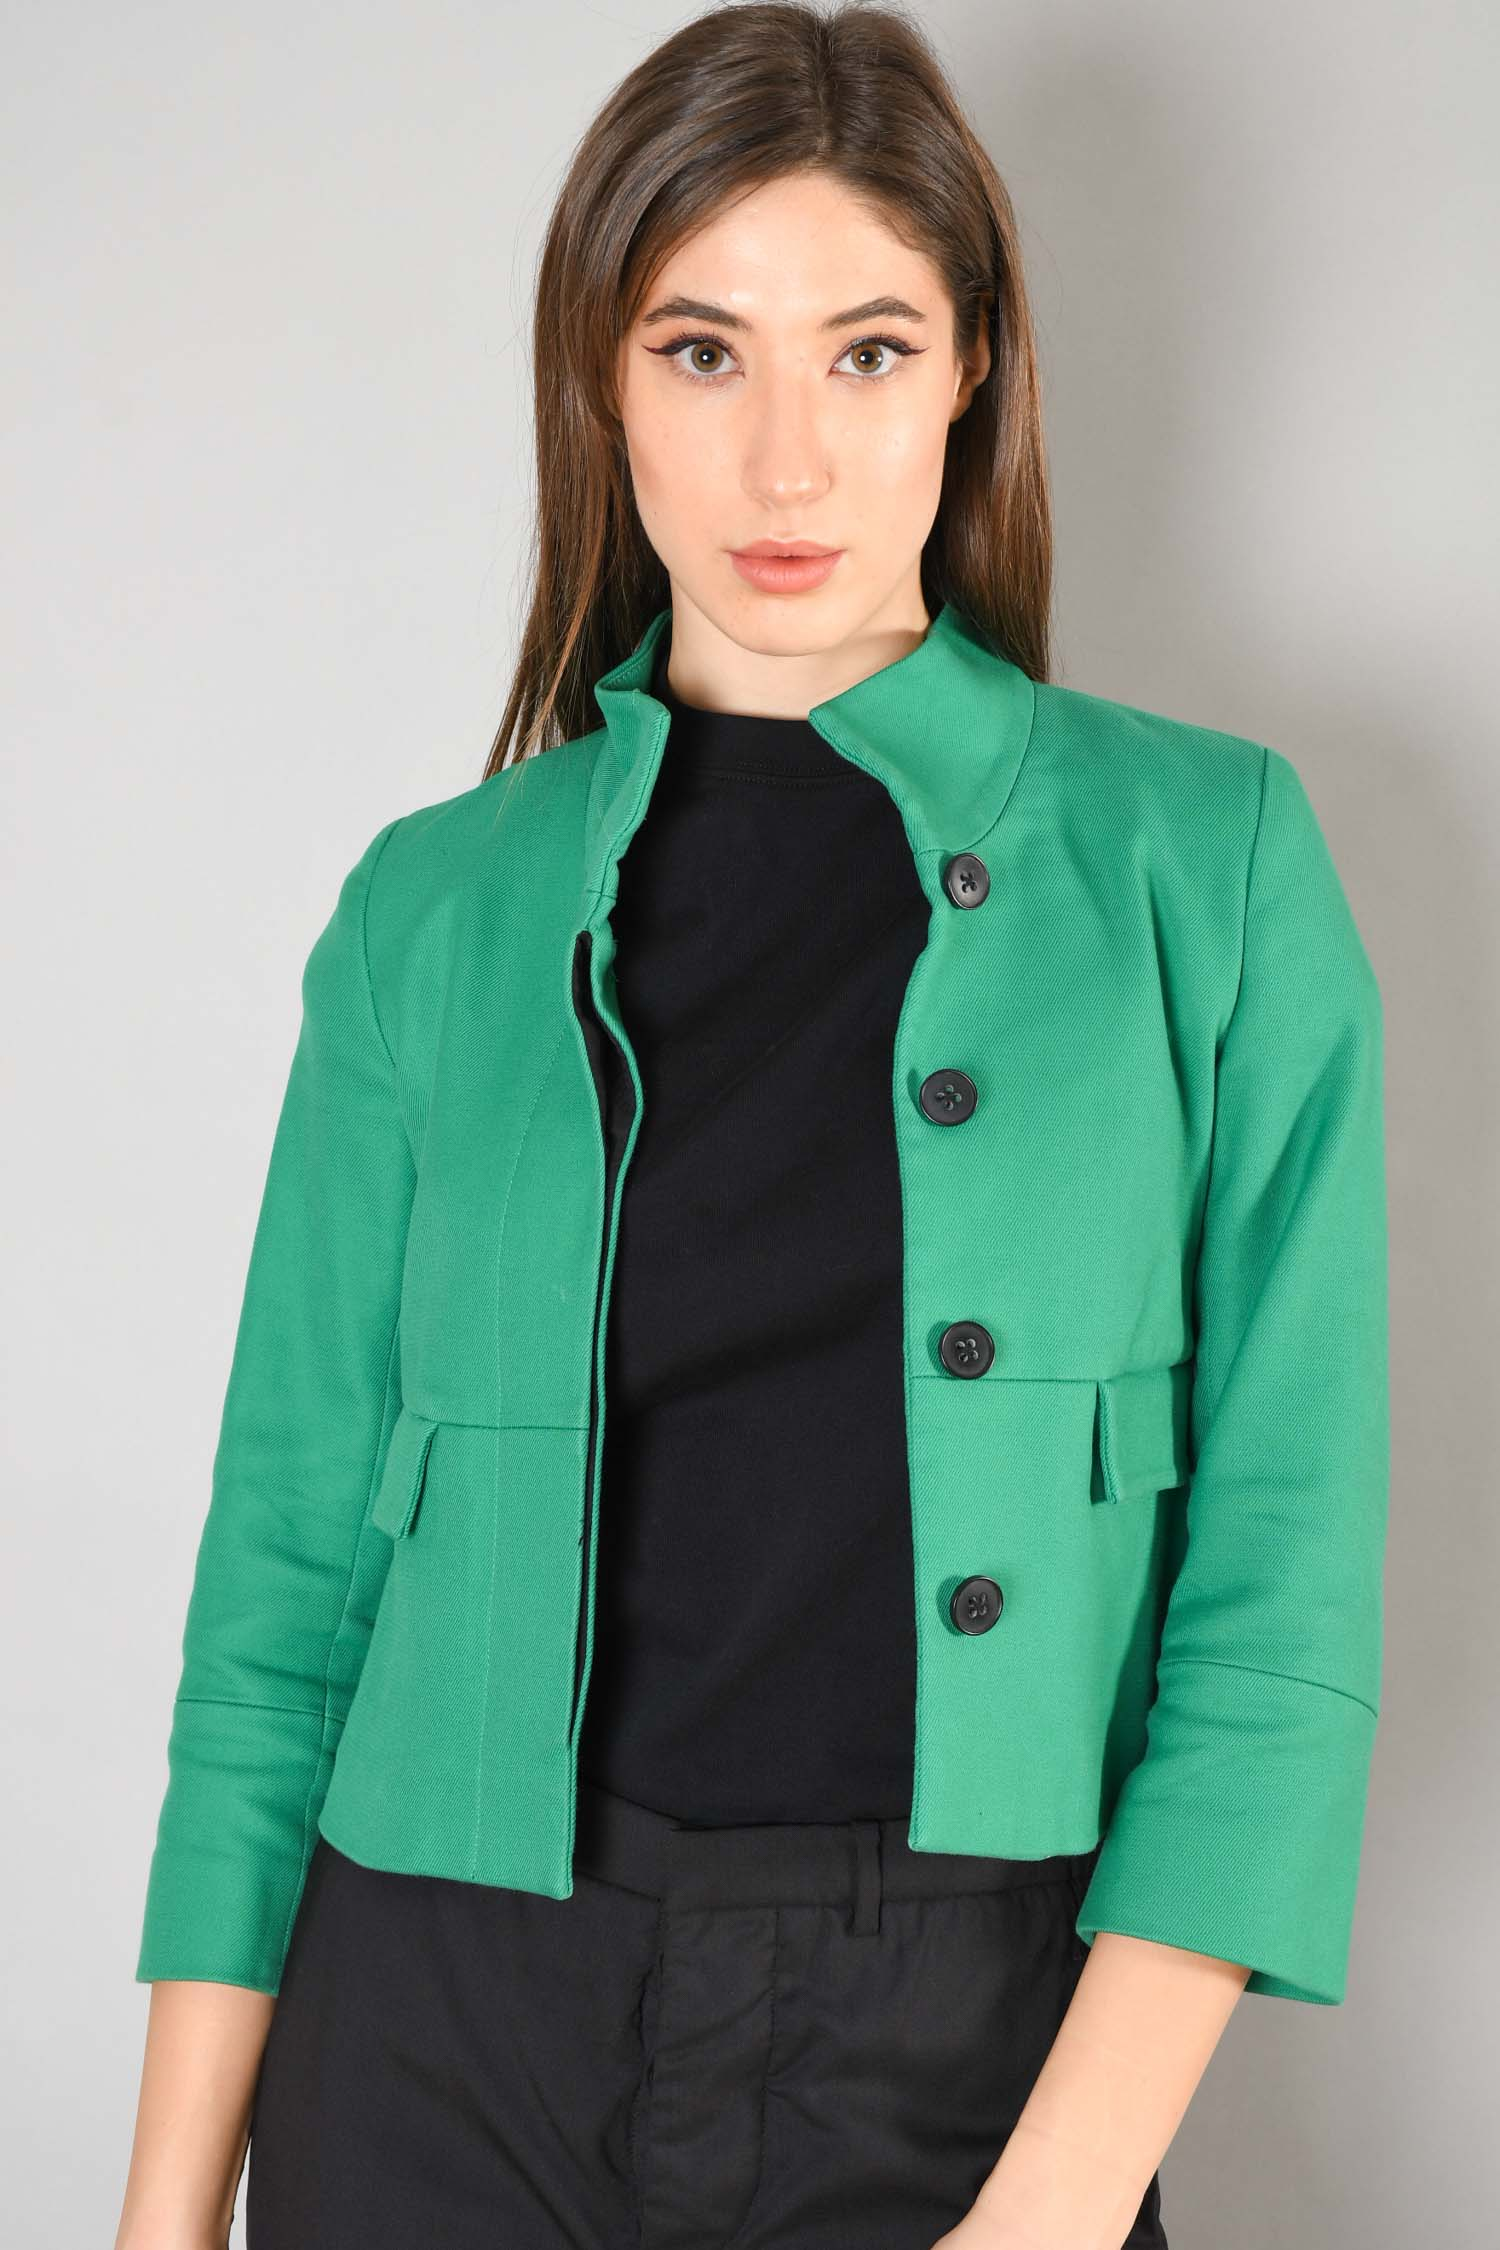 Club Monaco Green Cropped Jacket w/ Flat Pockets Size XS